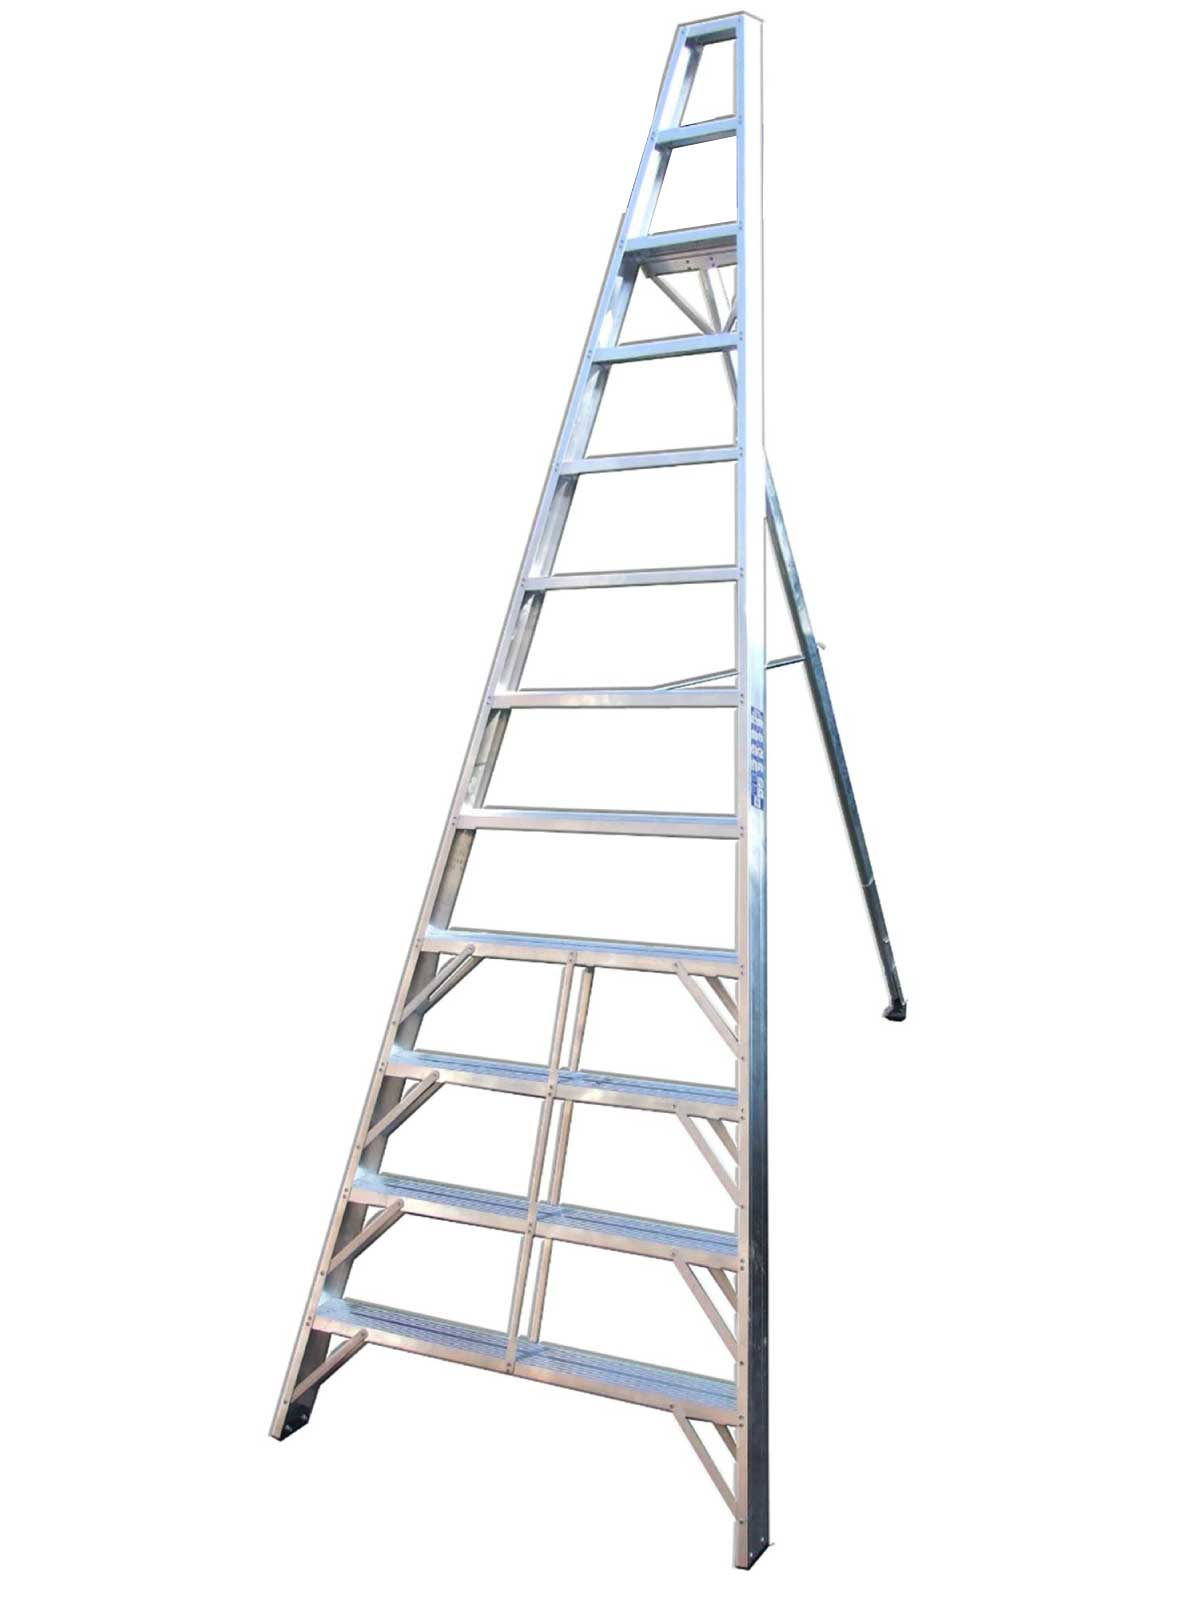 Fruit Picking Ladders Chase Ladders